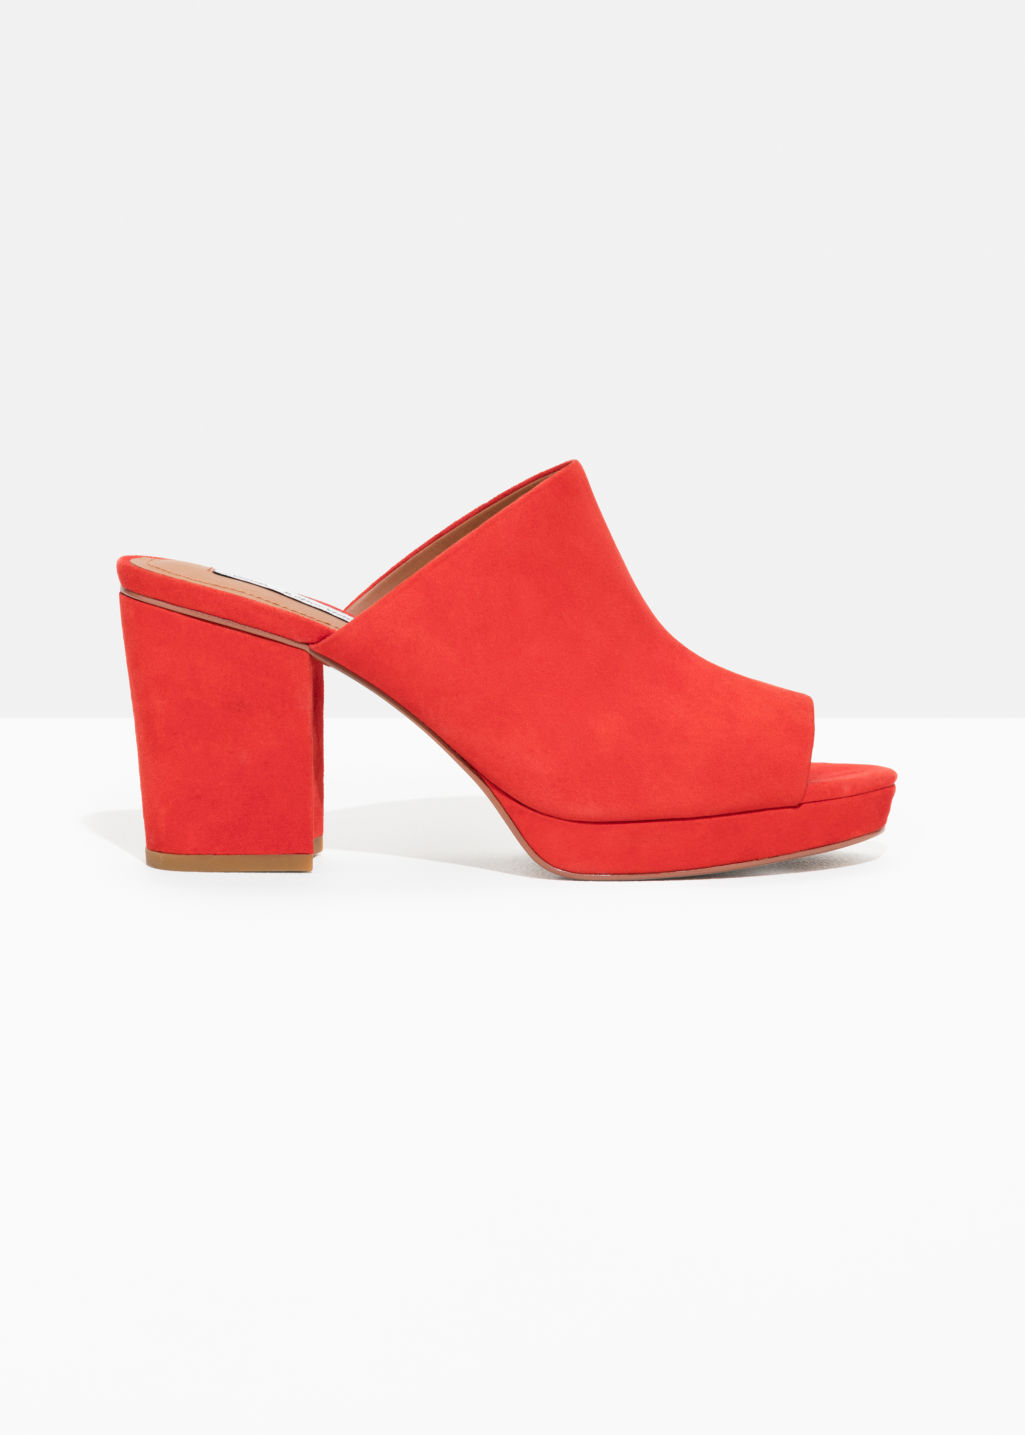 e6bd3bc888c Suede Mules - Tomato Orange - Heeled sandals -   Other Stories